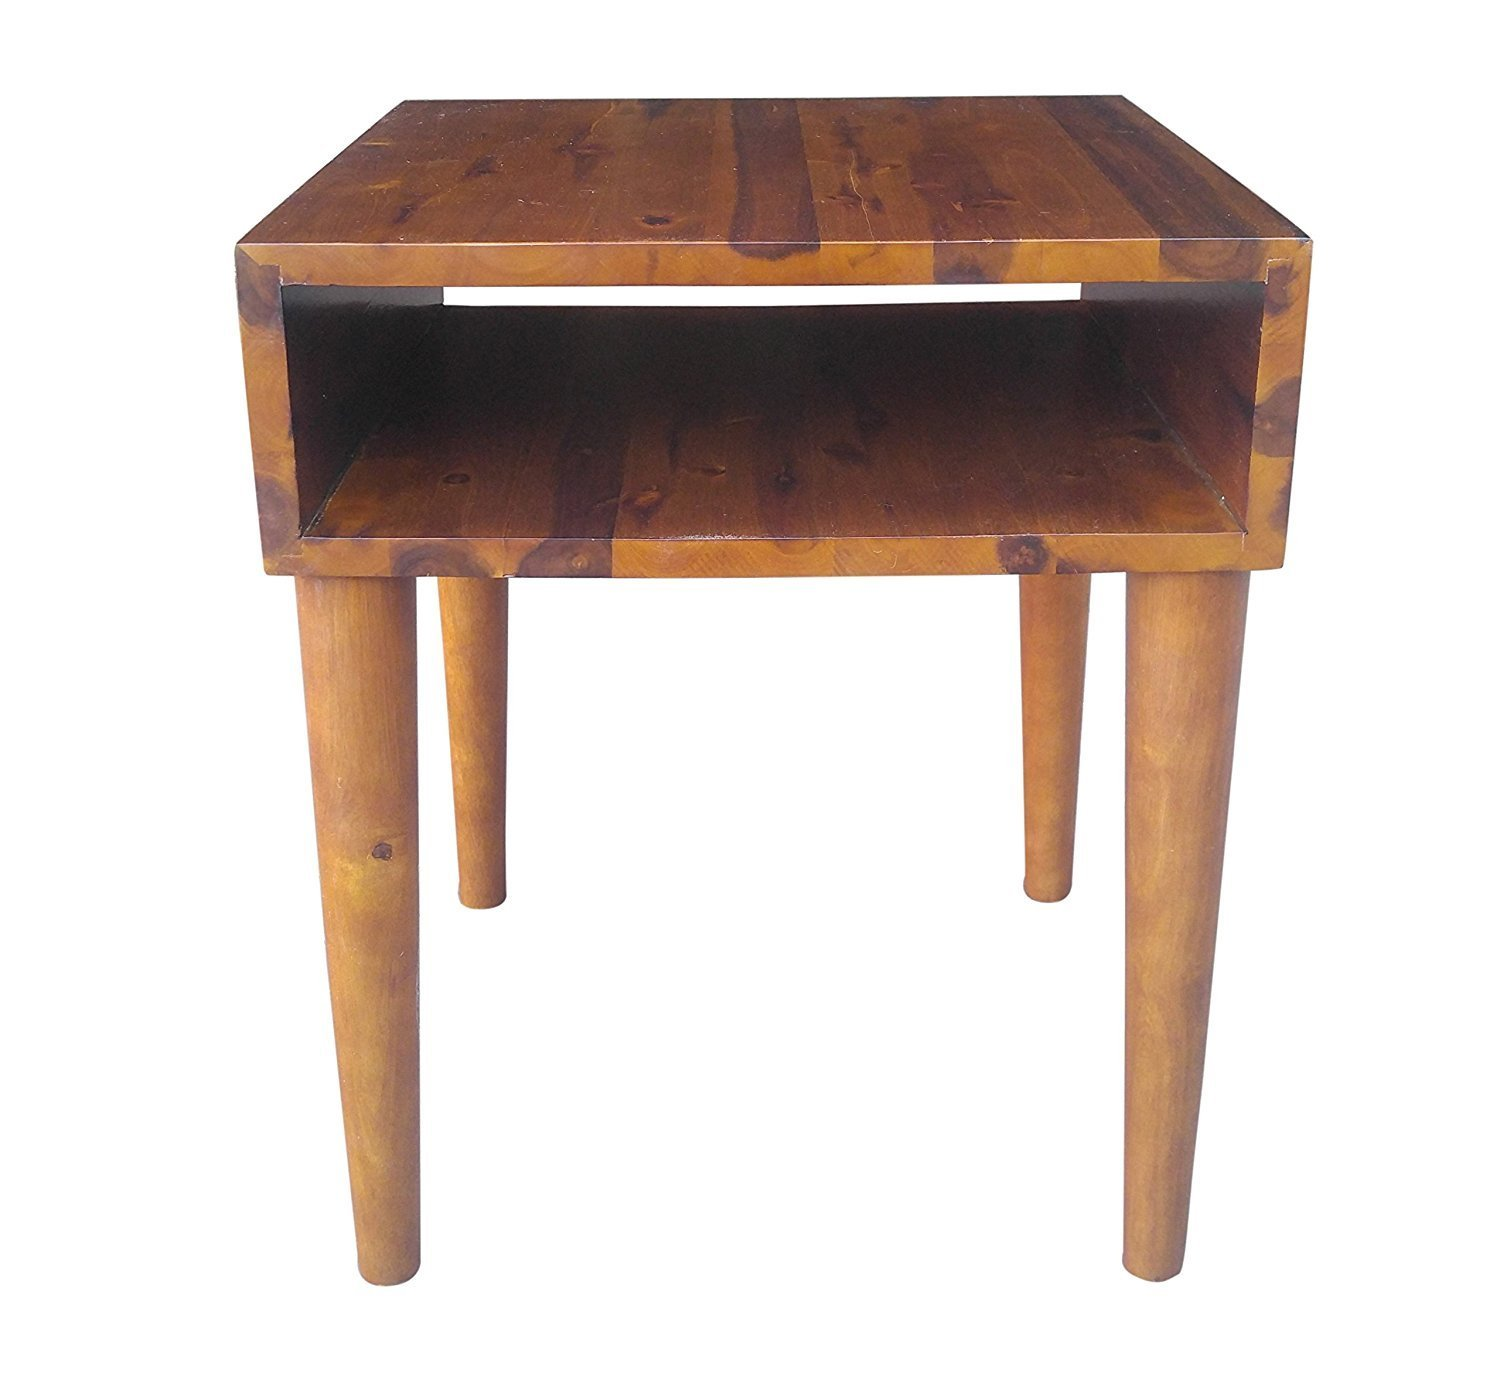 Design 59 inc Mid-Century Modern Acacia Hardwood Side / End Table / Night Stand, NO TOOLS REQUIRED